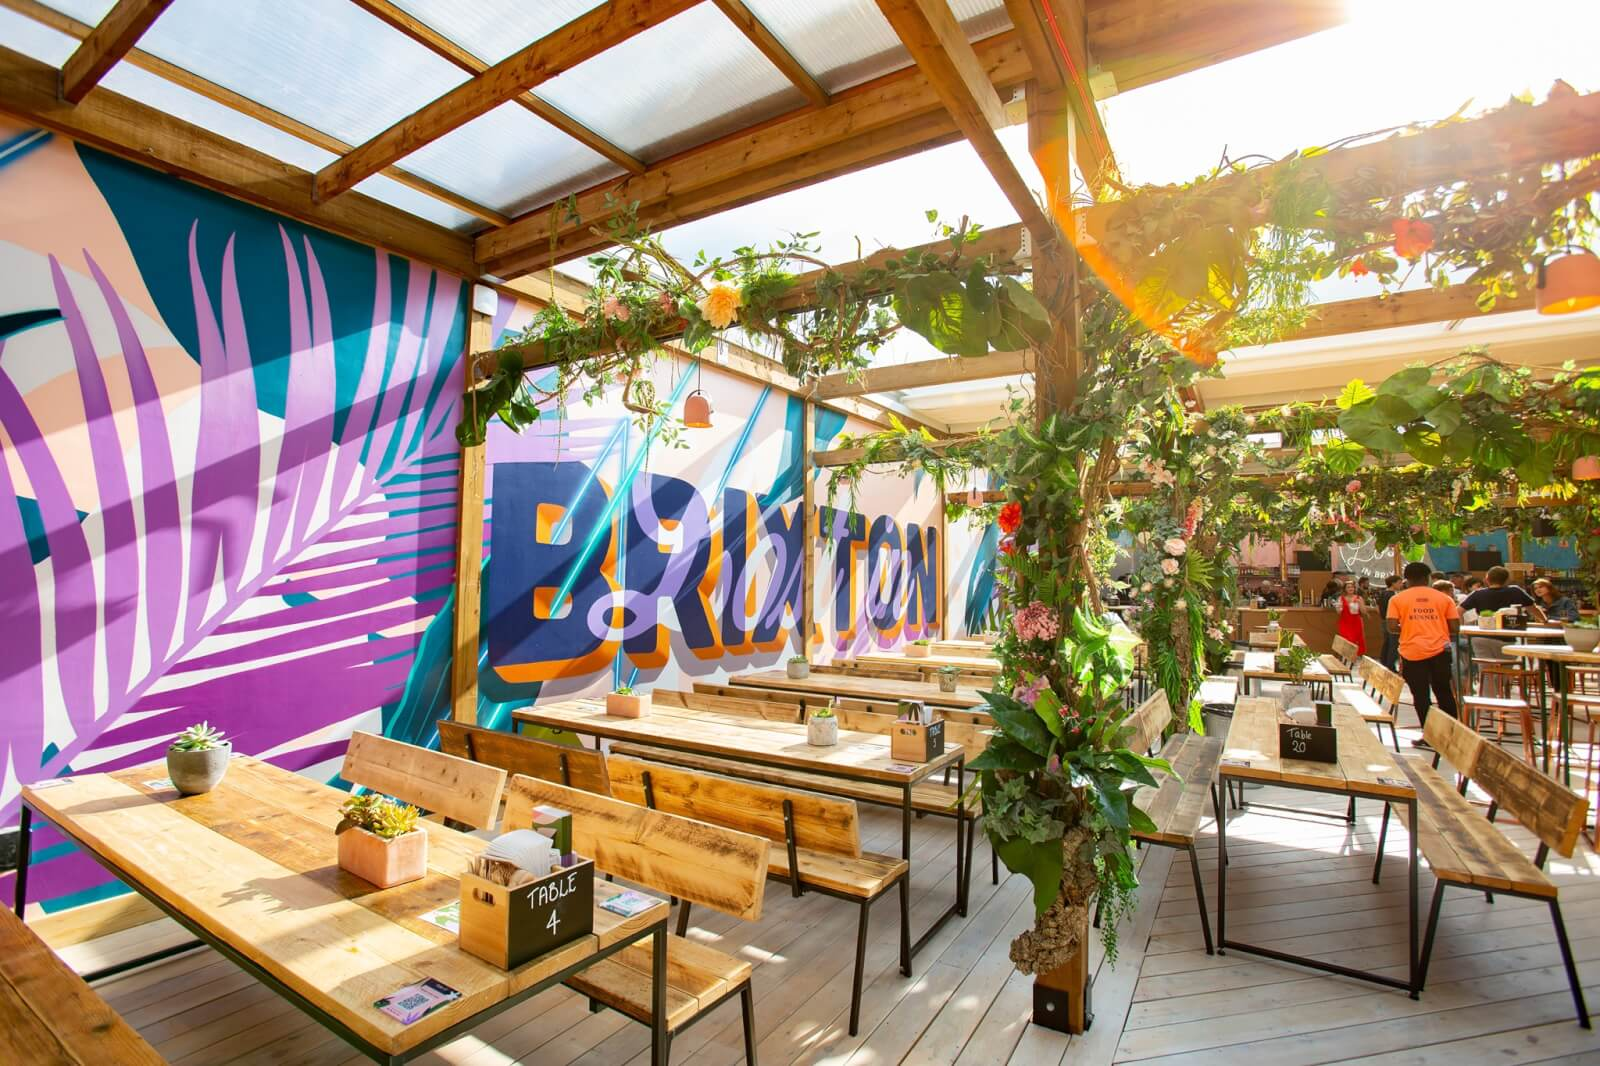 Lost in Brixton, one of the best outdoor bars in London